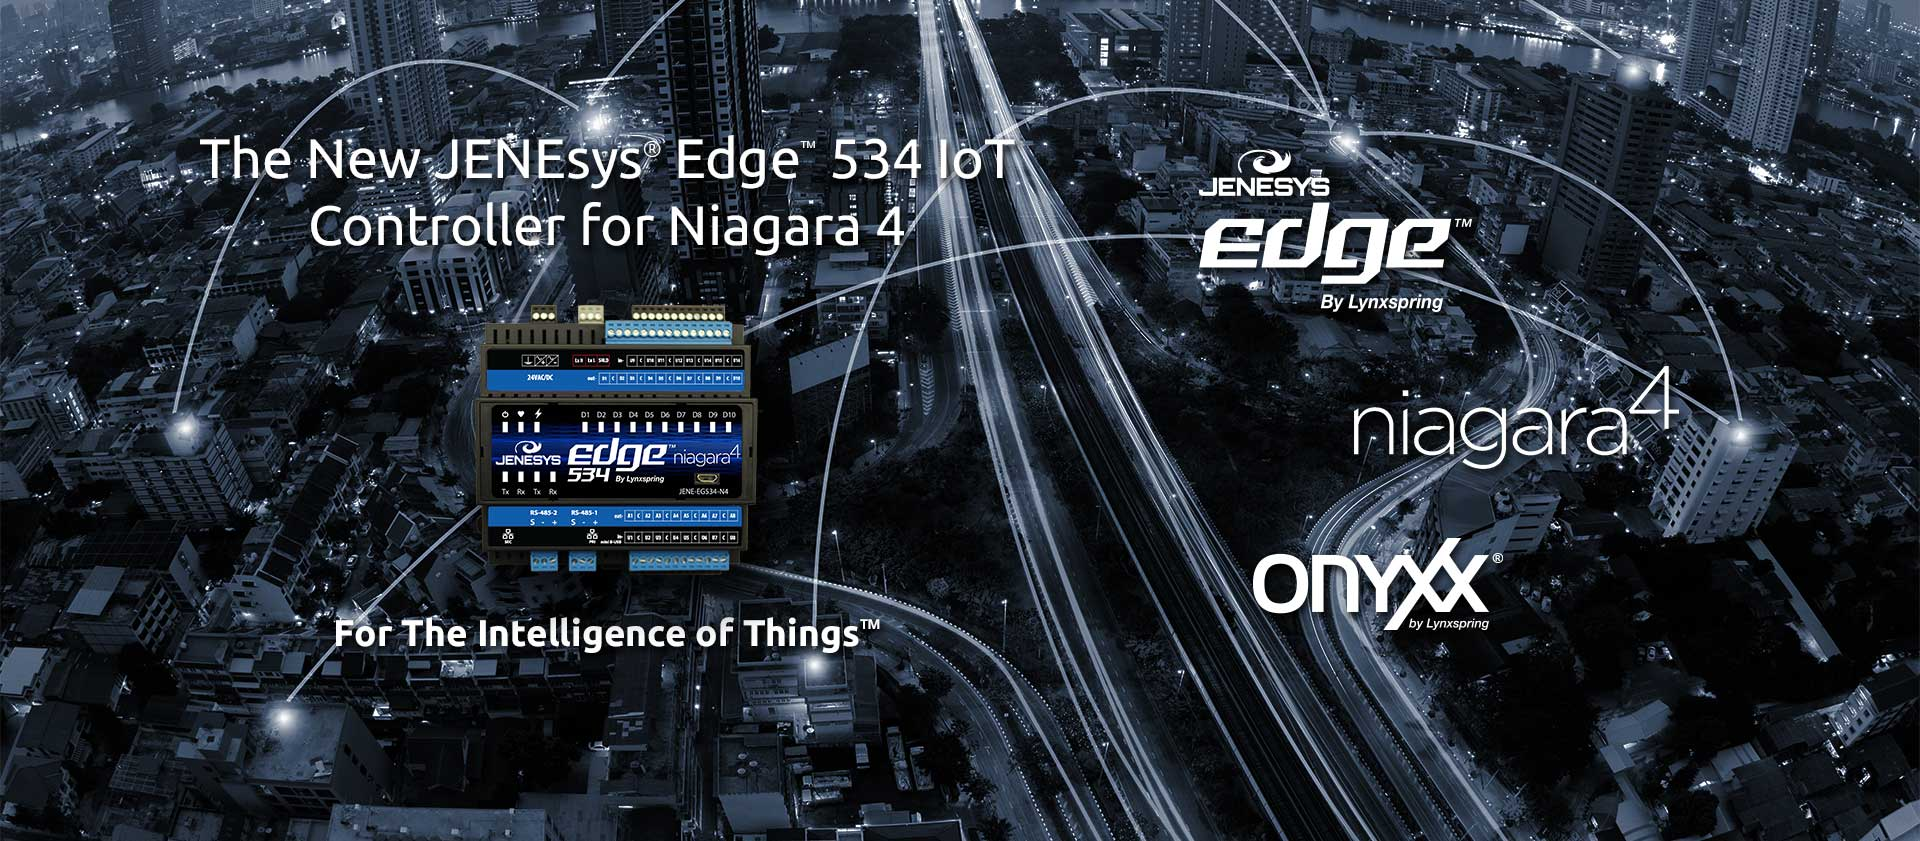 New JENEsys Edge 534 IoT Controller for Niagara 4